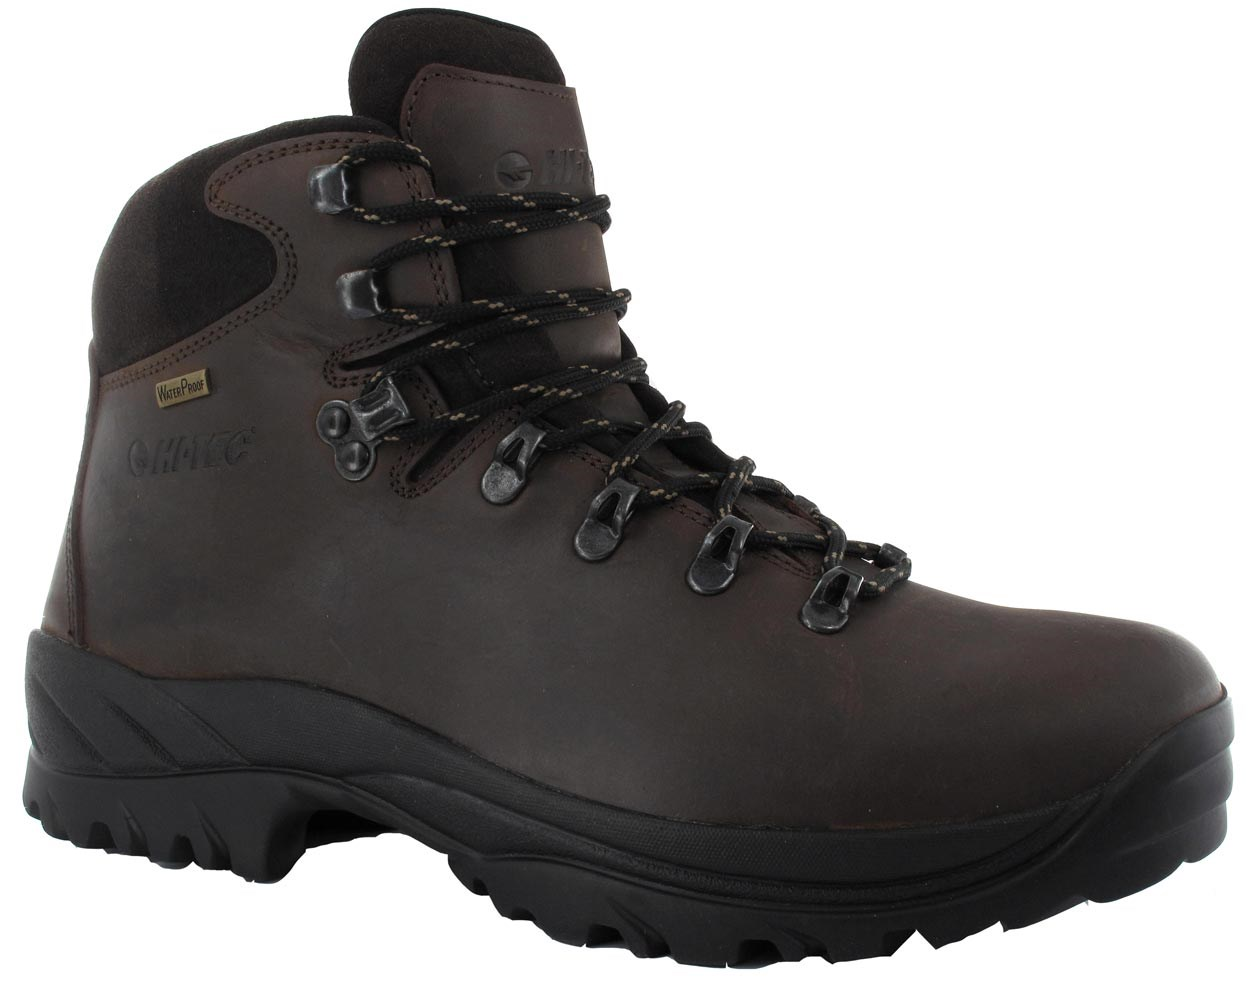 7cc4e7dec20 Hi-Tec Summit Waterproof Men s Hiking Boot